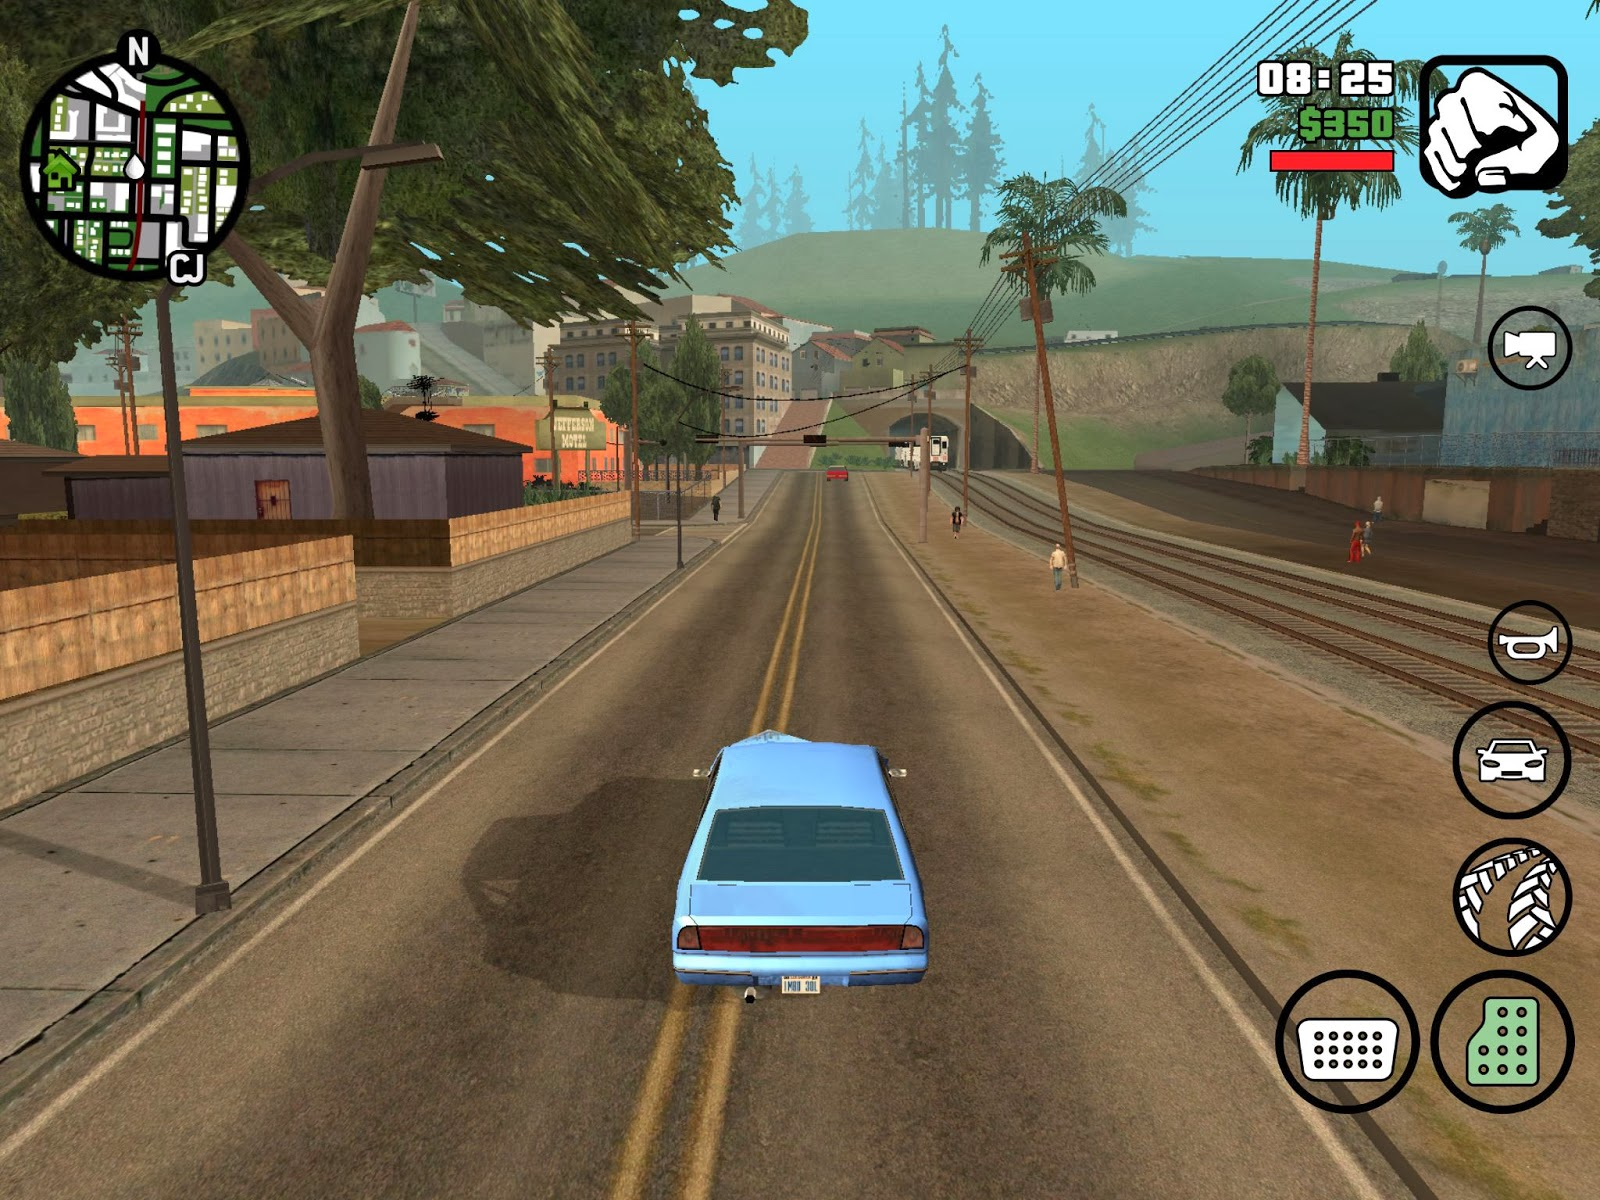 Download Game Android Hd Apk Data Free | Download Game